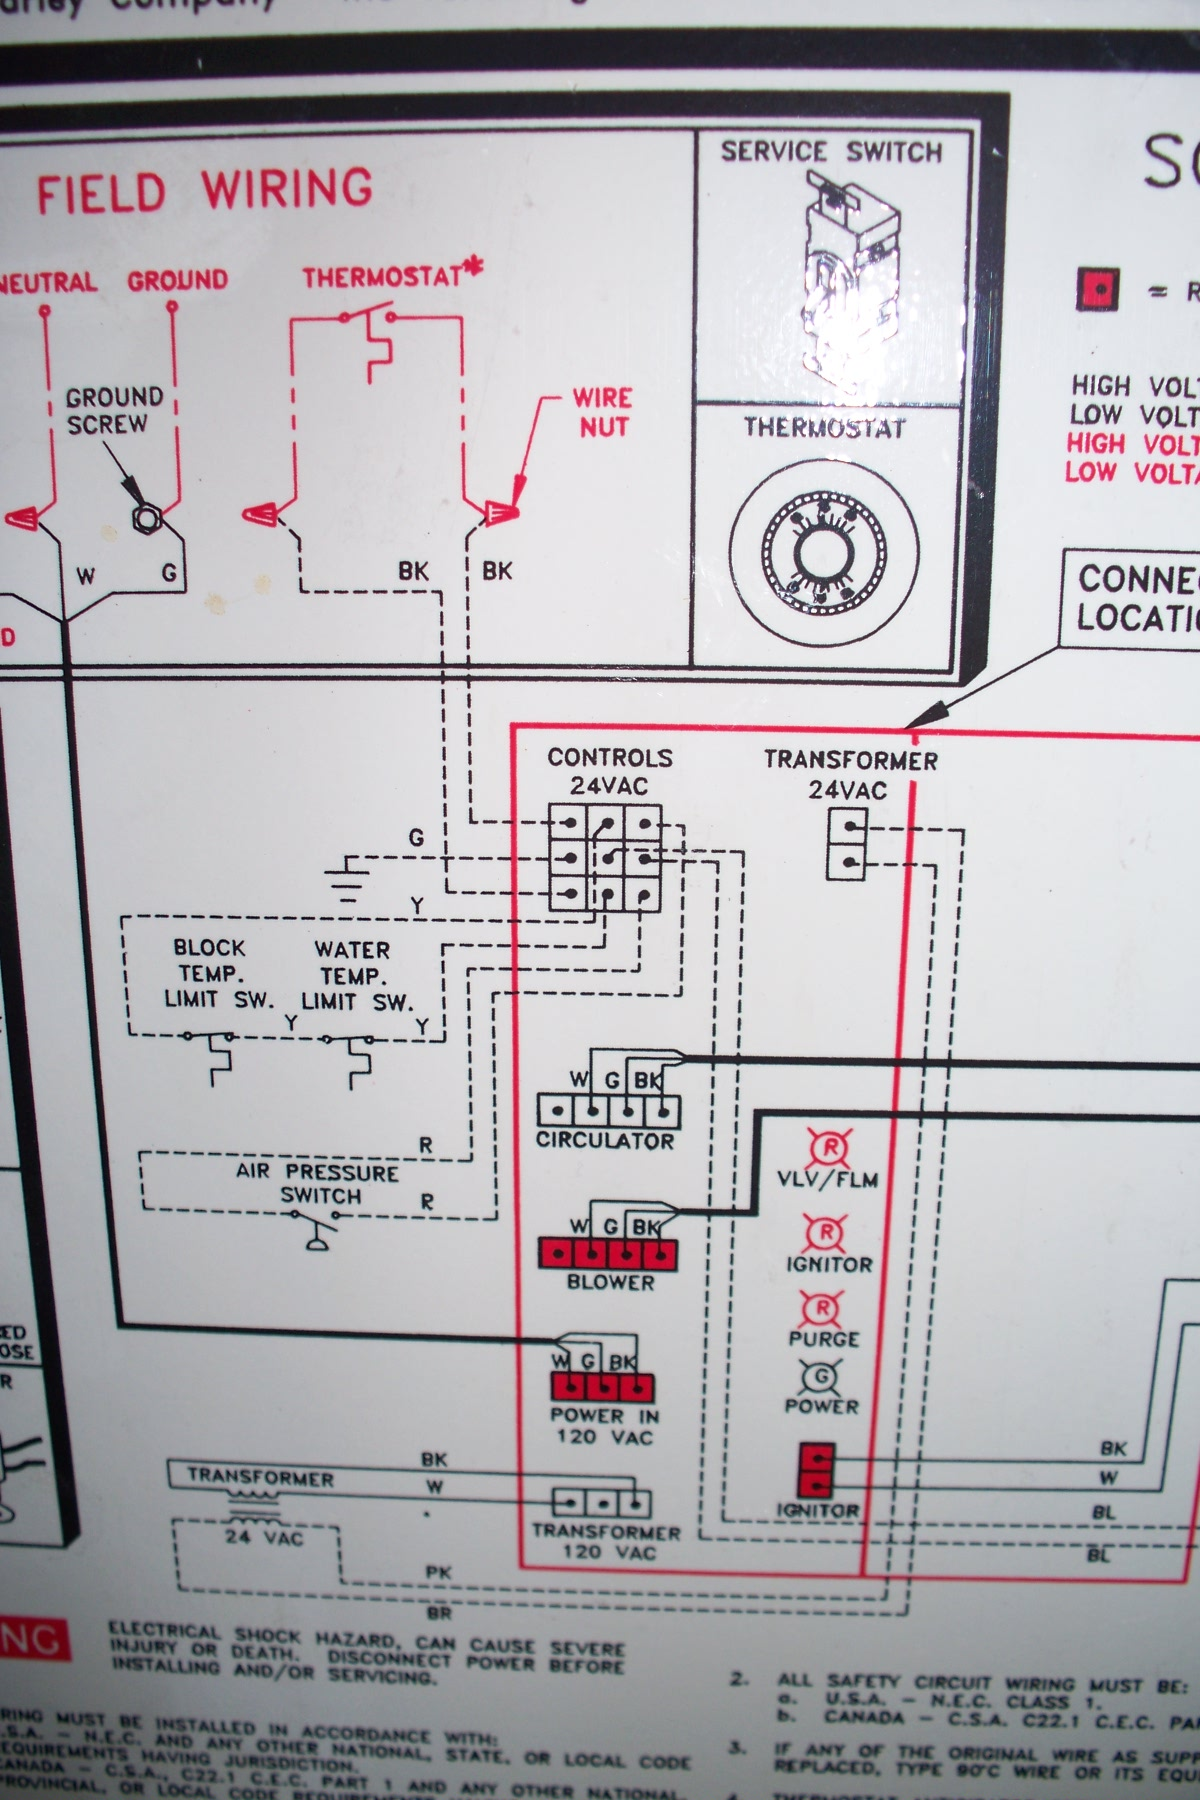 2014 01 12_010619_100_3141 i have a weil mcclain gv5 series 2 boiler with an amtrol amtrol boilermate wiring diagram at sewacar.co